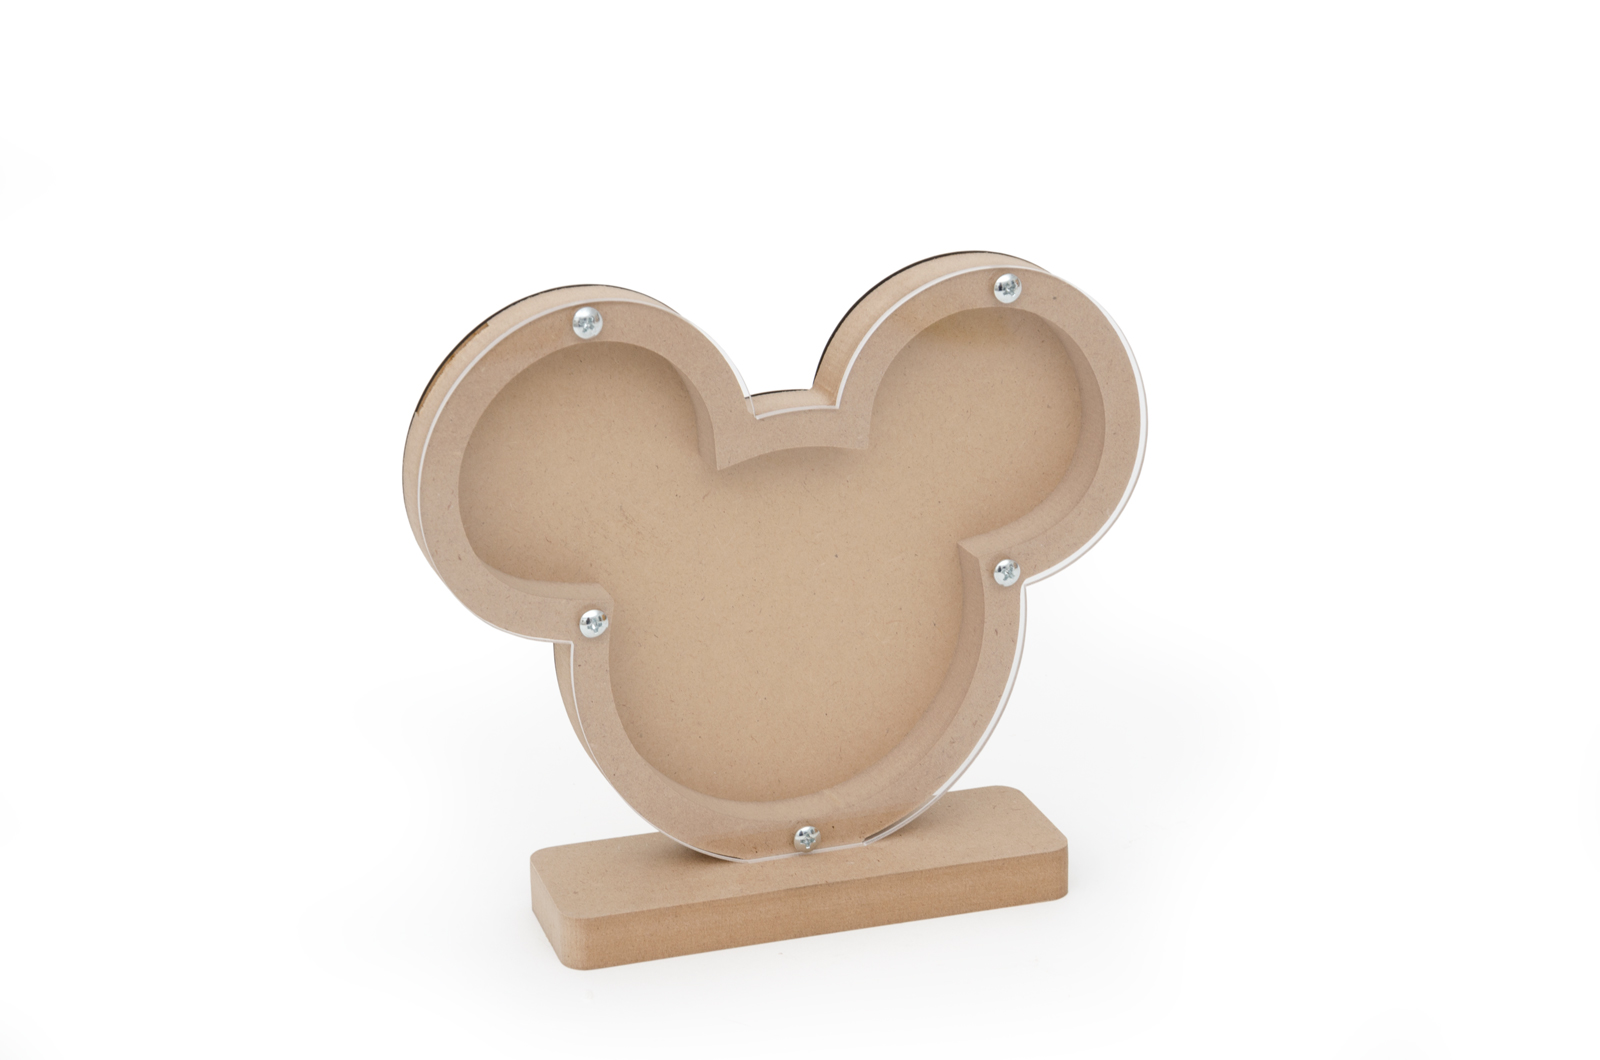 FRAME MONEYBOX MOUSE BOY 20.8X18X1.6CM MDF WITH BASE